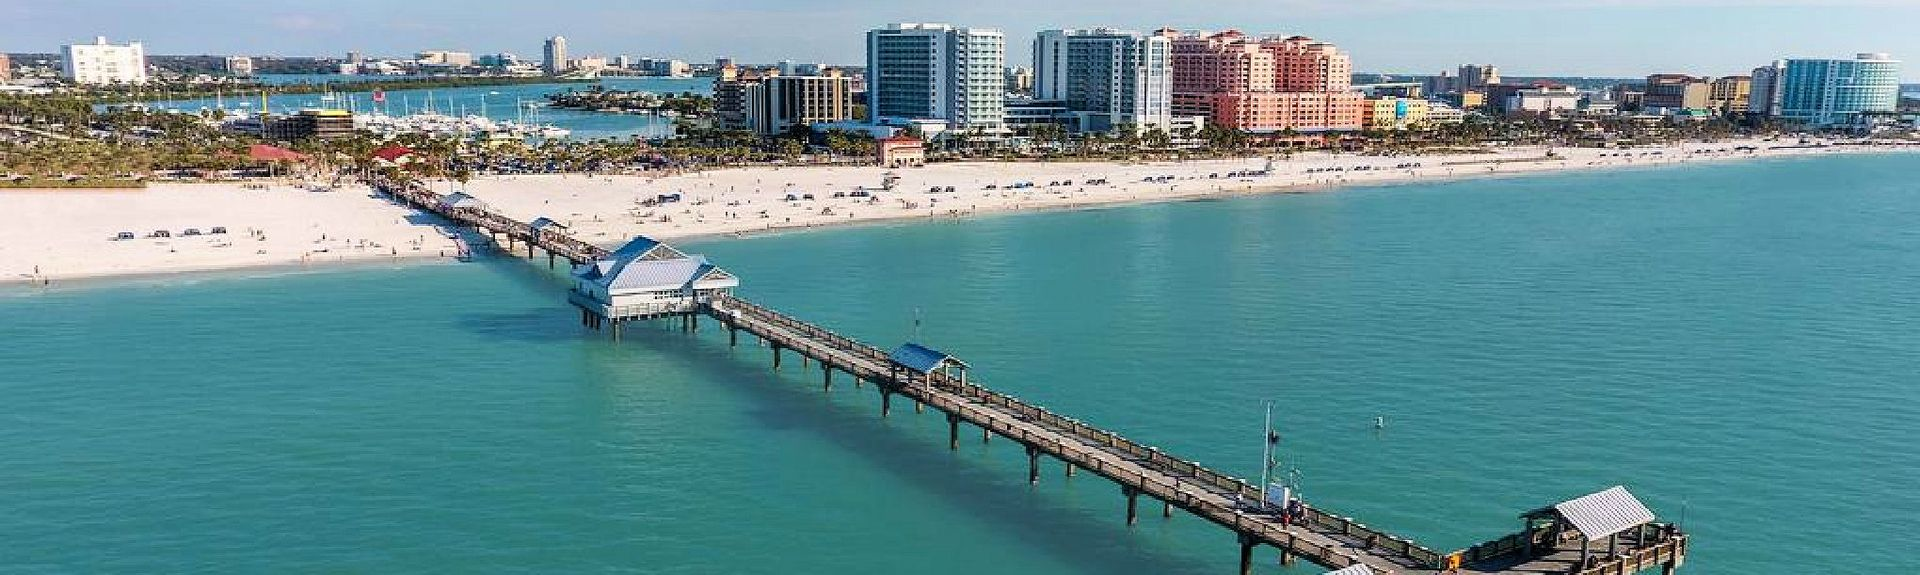 Harborview Grande, Clearwater Beach, Clearwater, FL, USA